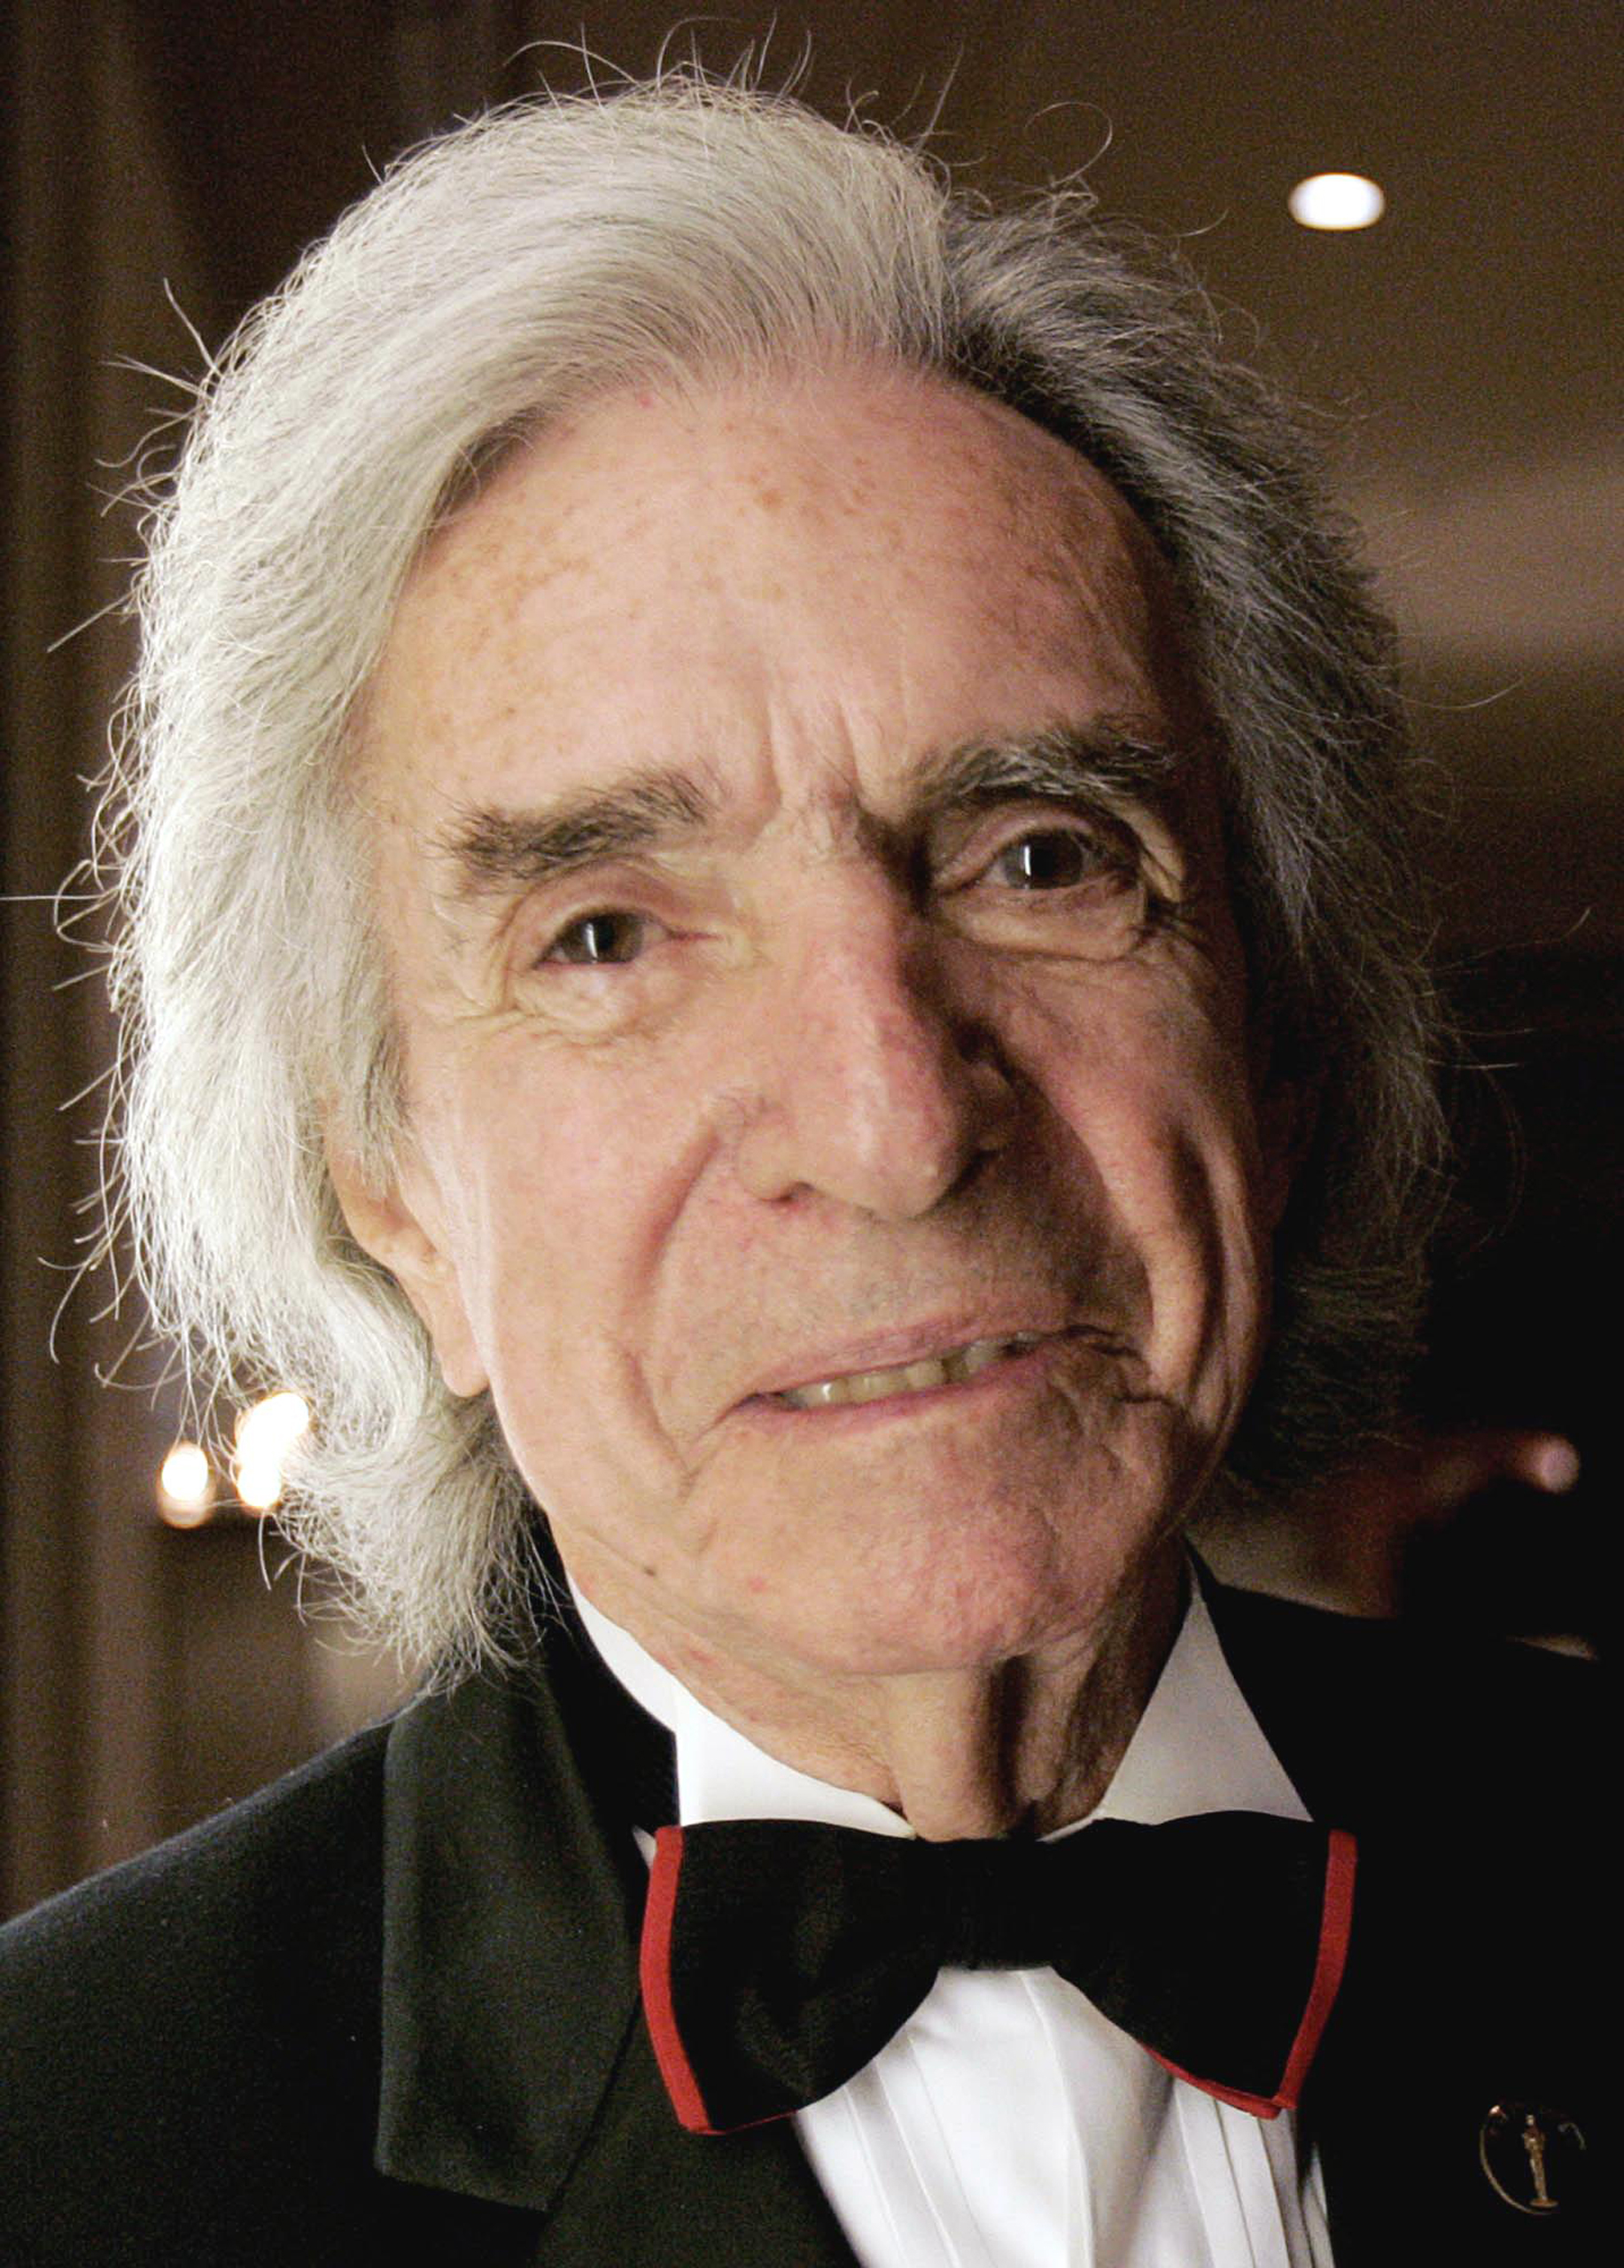 Arthur Hiller poses for a photo before the start of the Directors Guild of Canada Award Ceremonies in Toronto on Oct. 2, 2004.